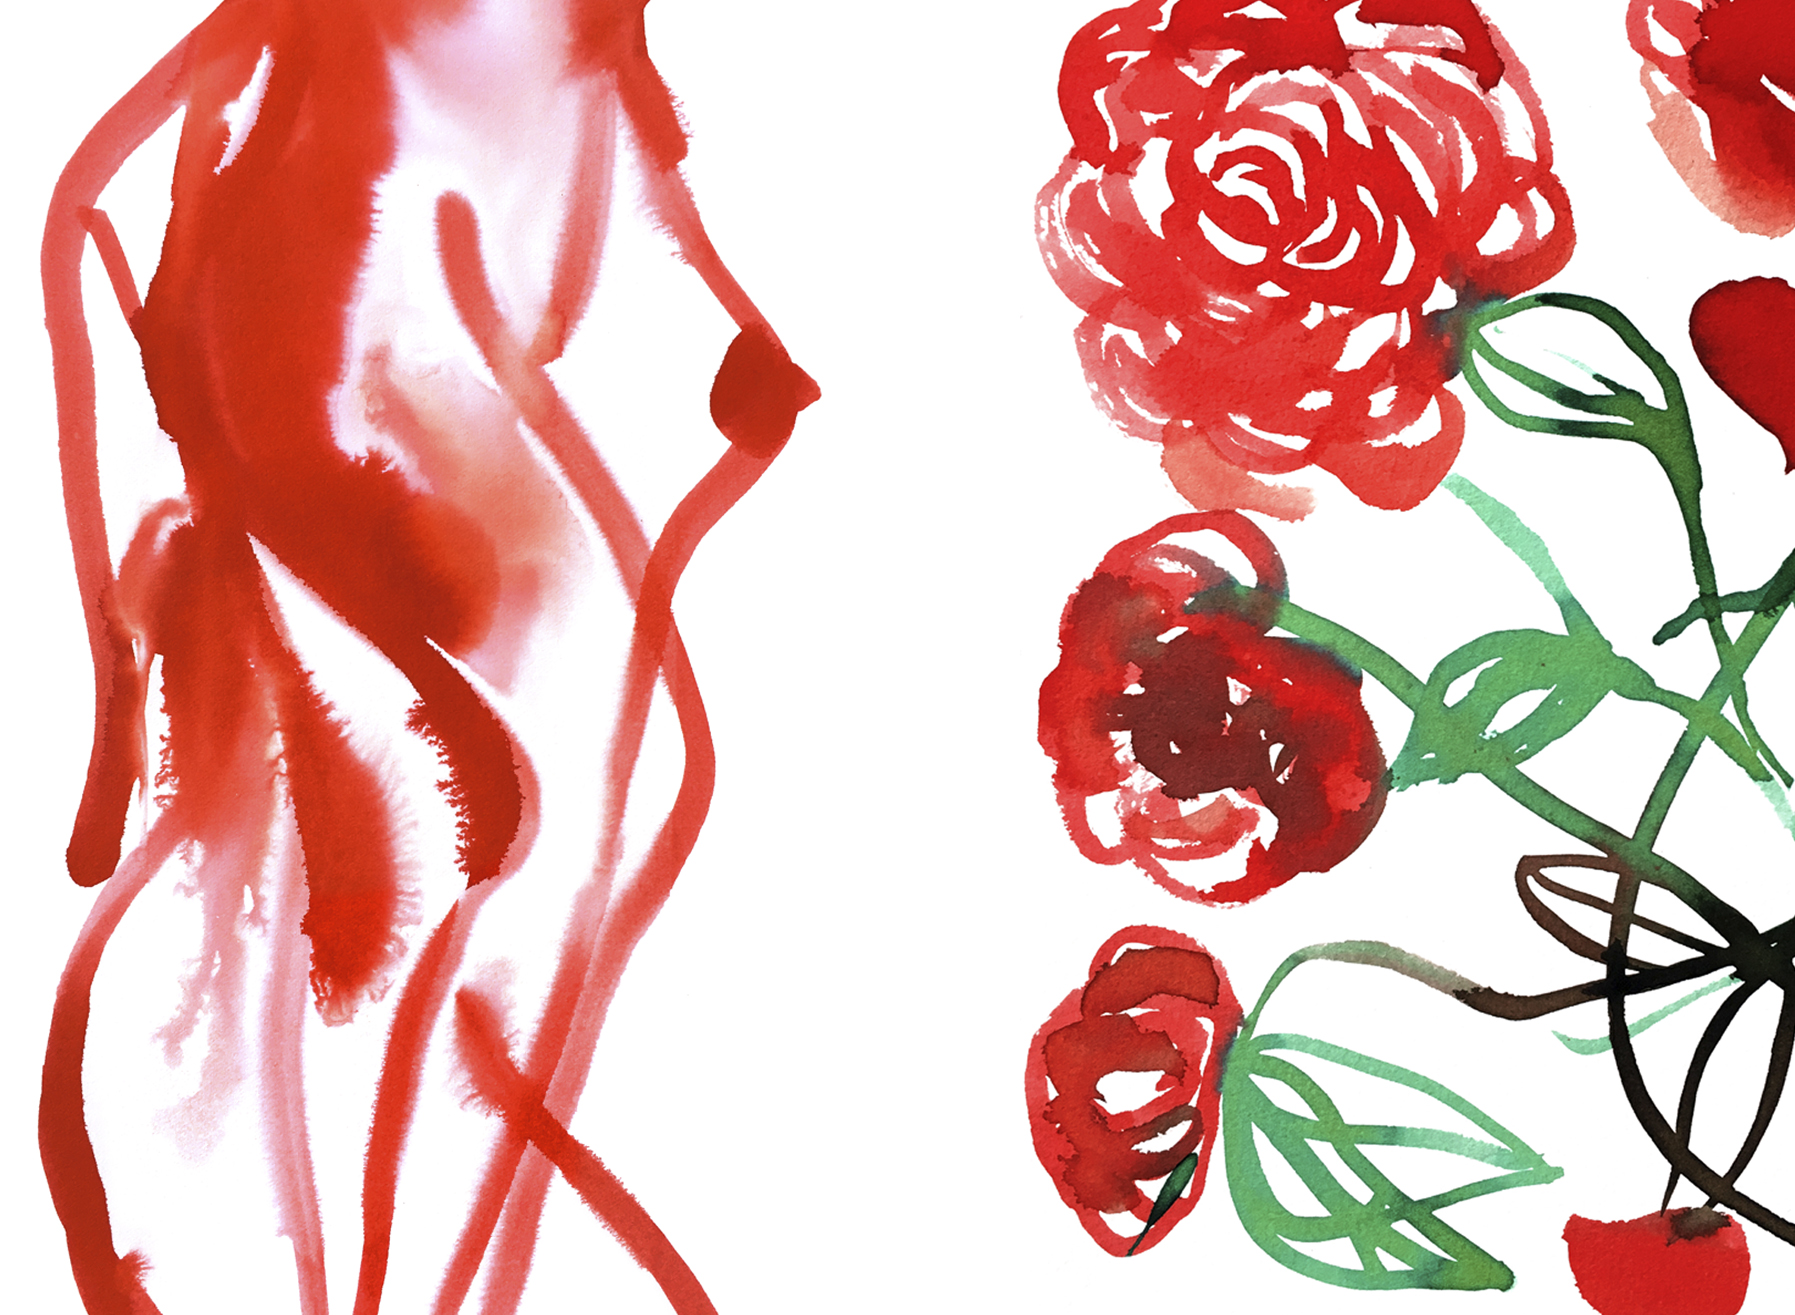 ...And daisies, and blue bells, and peonies.I was recently sorting through some sketches and noticed a parallel between my drawings of women and flowers, so I humored the thought and made these compositions that make me think of scent and fragrance. -